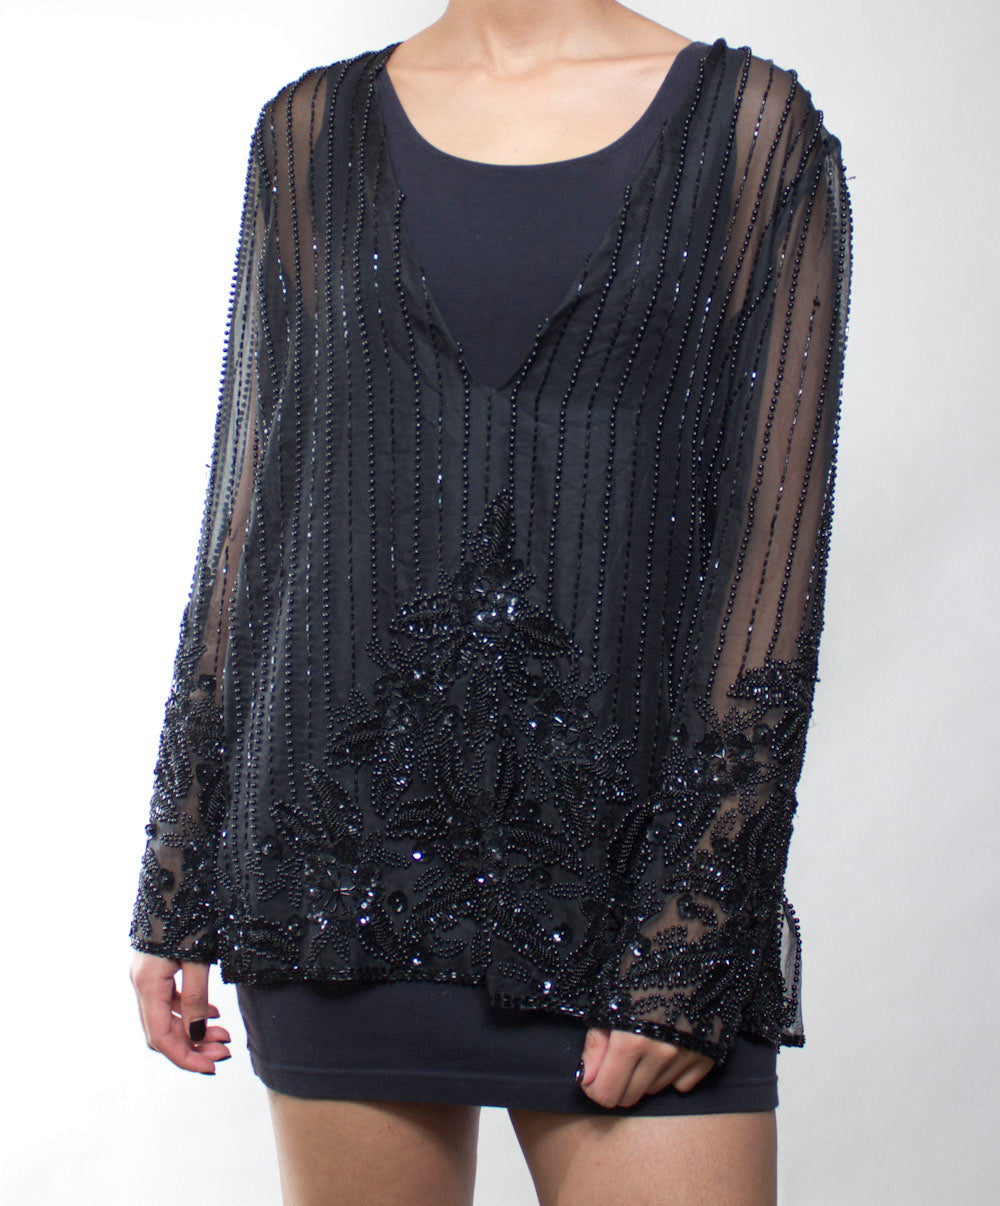 Onyx Sequin Top